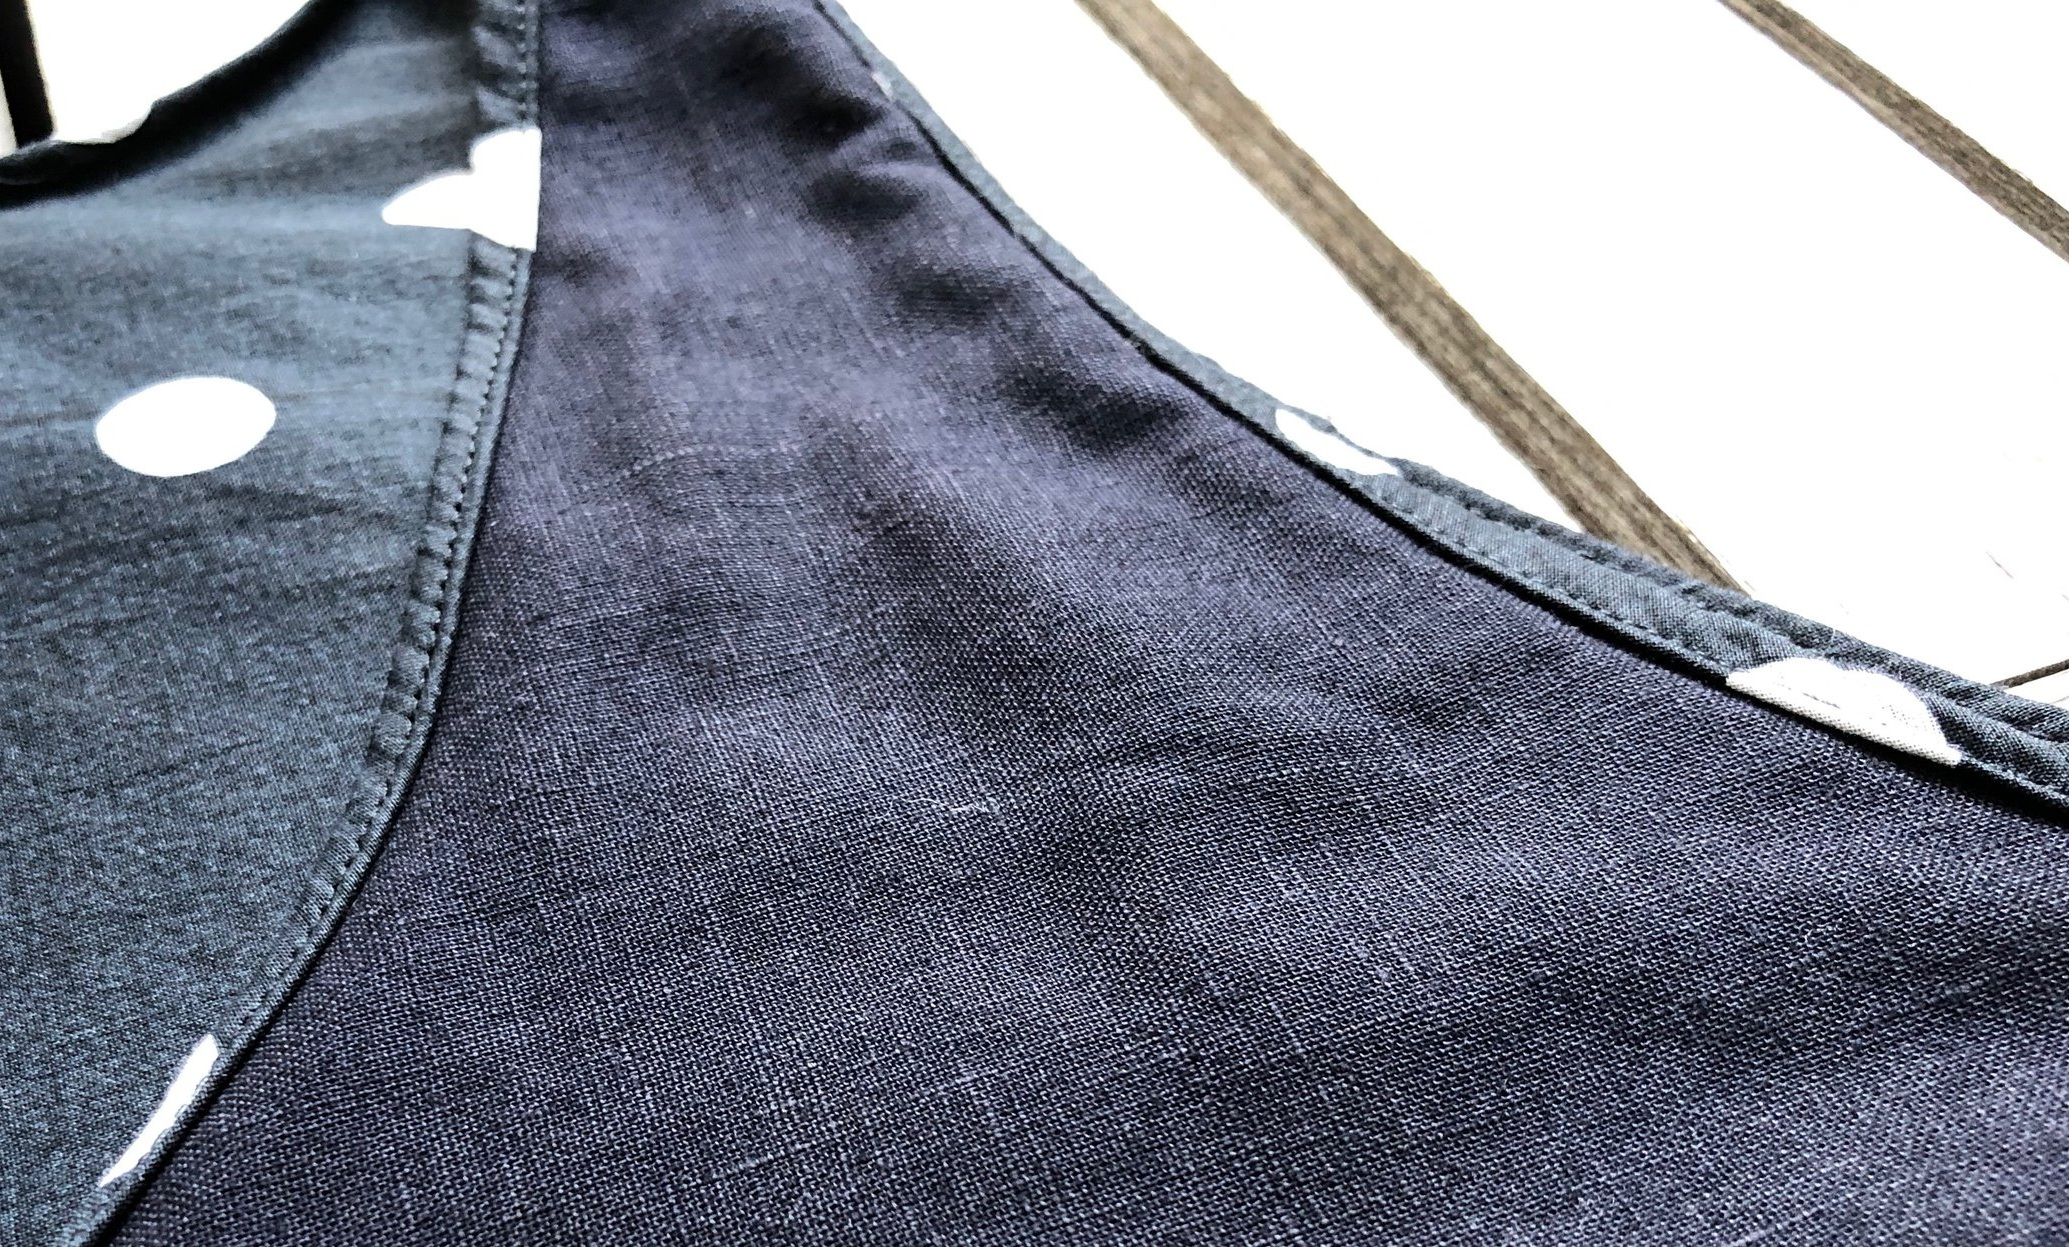 Black linen underlines the cotton woven fashion fabric of the Slip Dress.